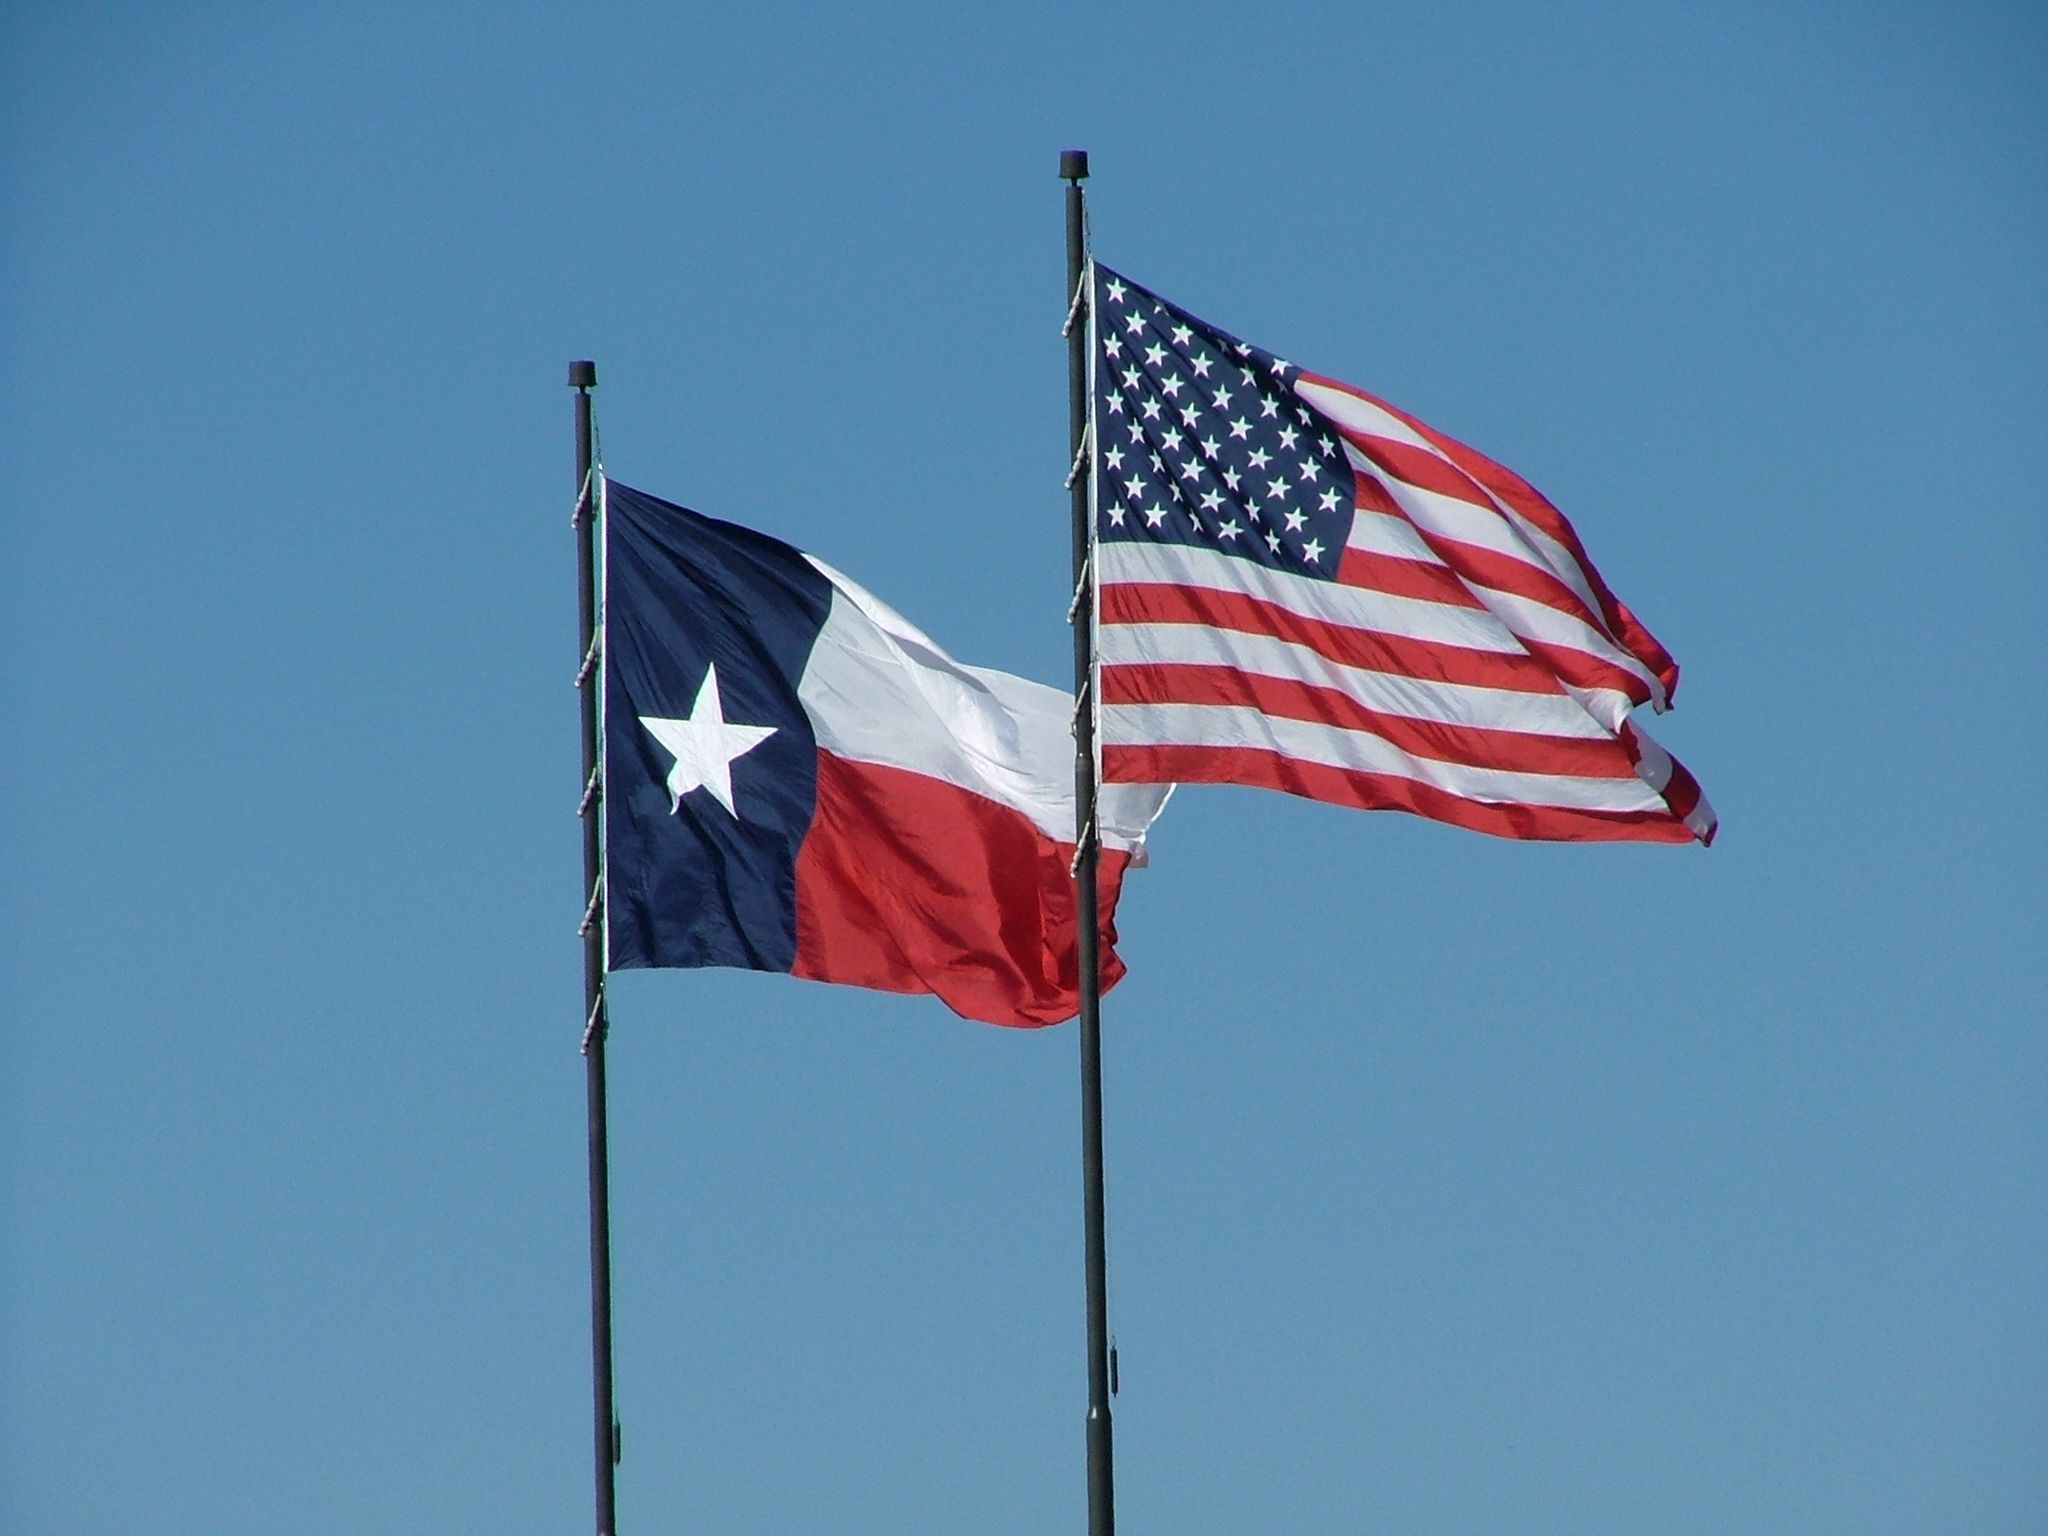 Us Texas Flags Rustic Images Foundmyself Texas Flags Texas Top Flag